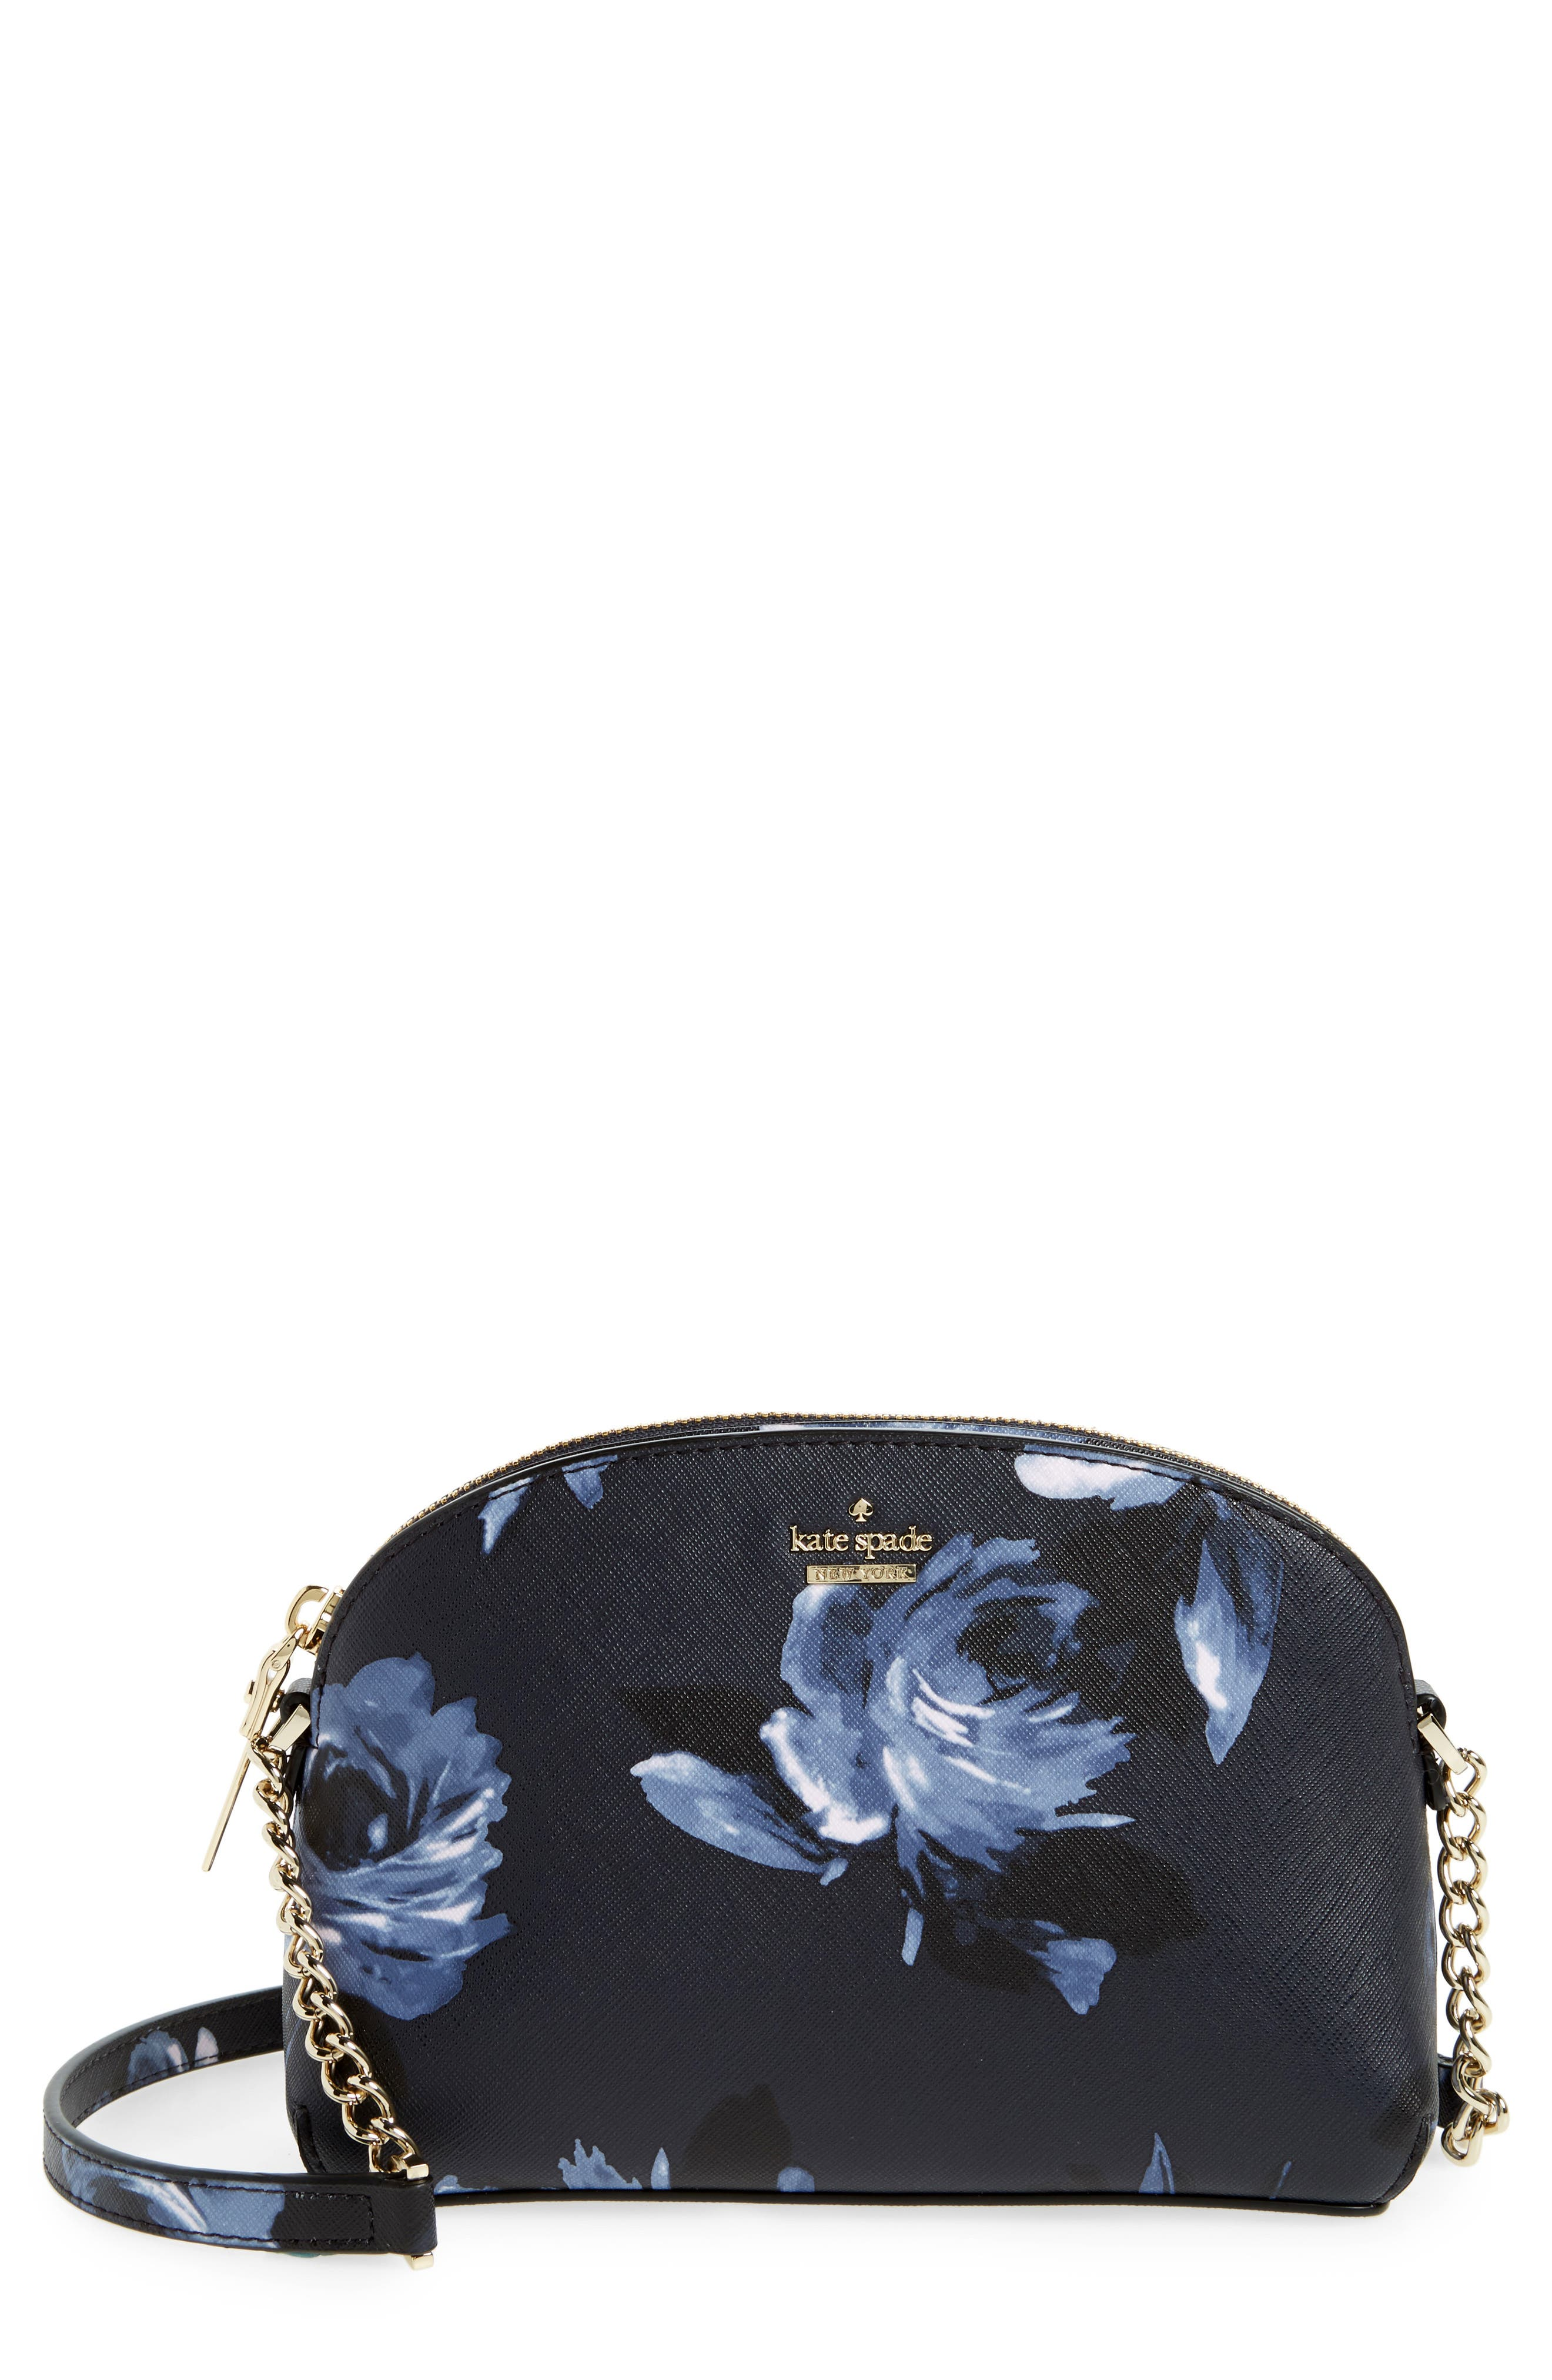 Alternate Image 1 Selected - kate spade new york cameron street rose - hilli leather crossbody bag